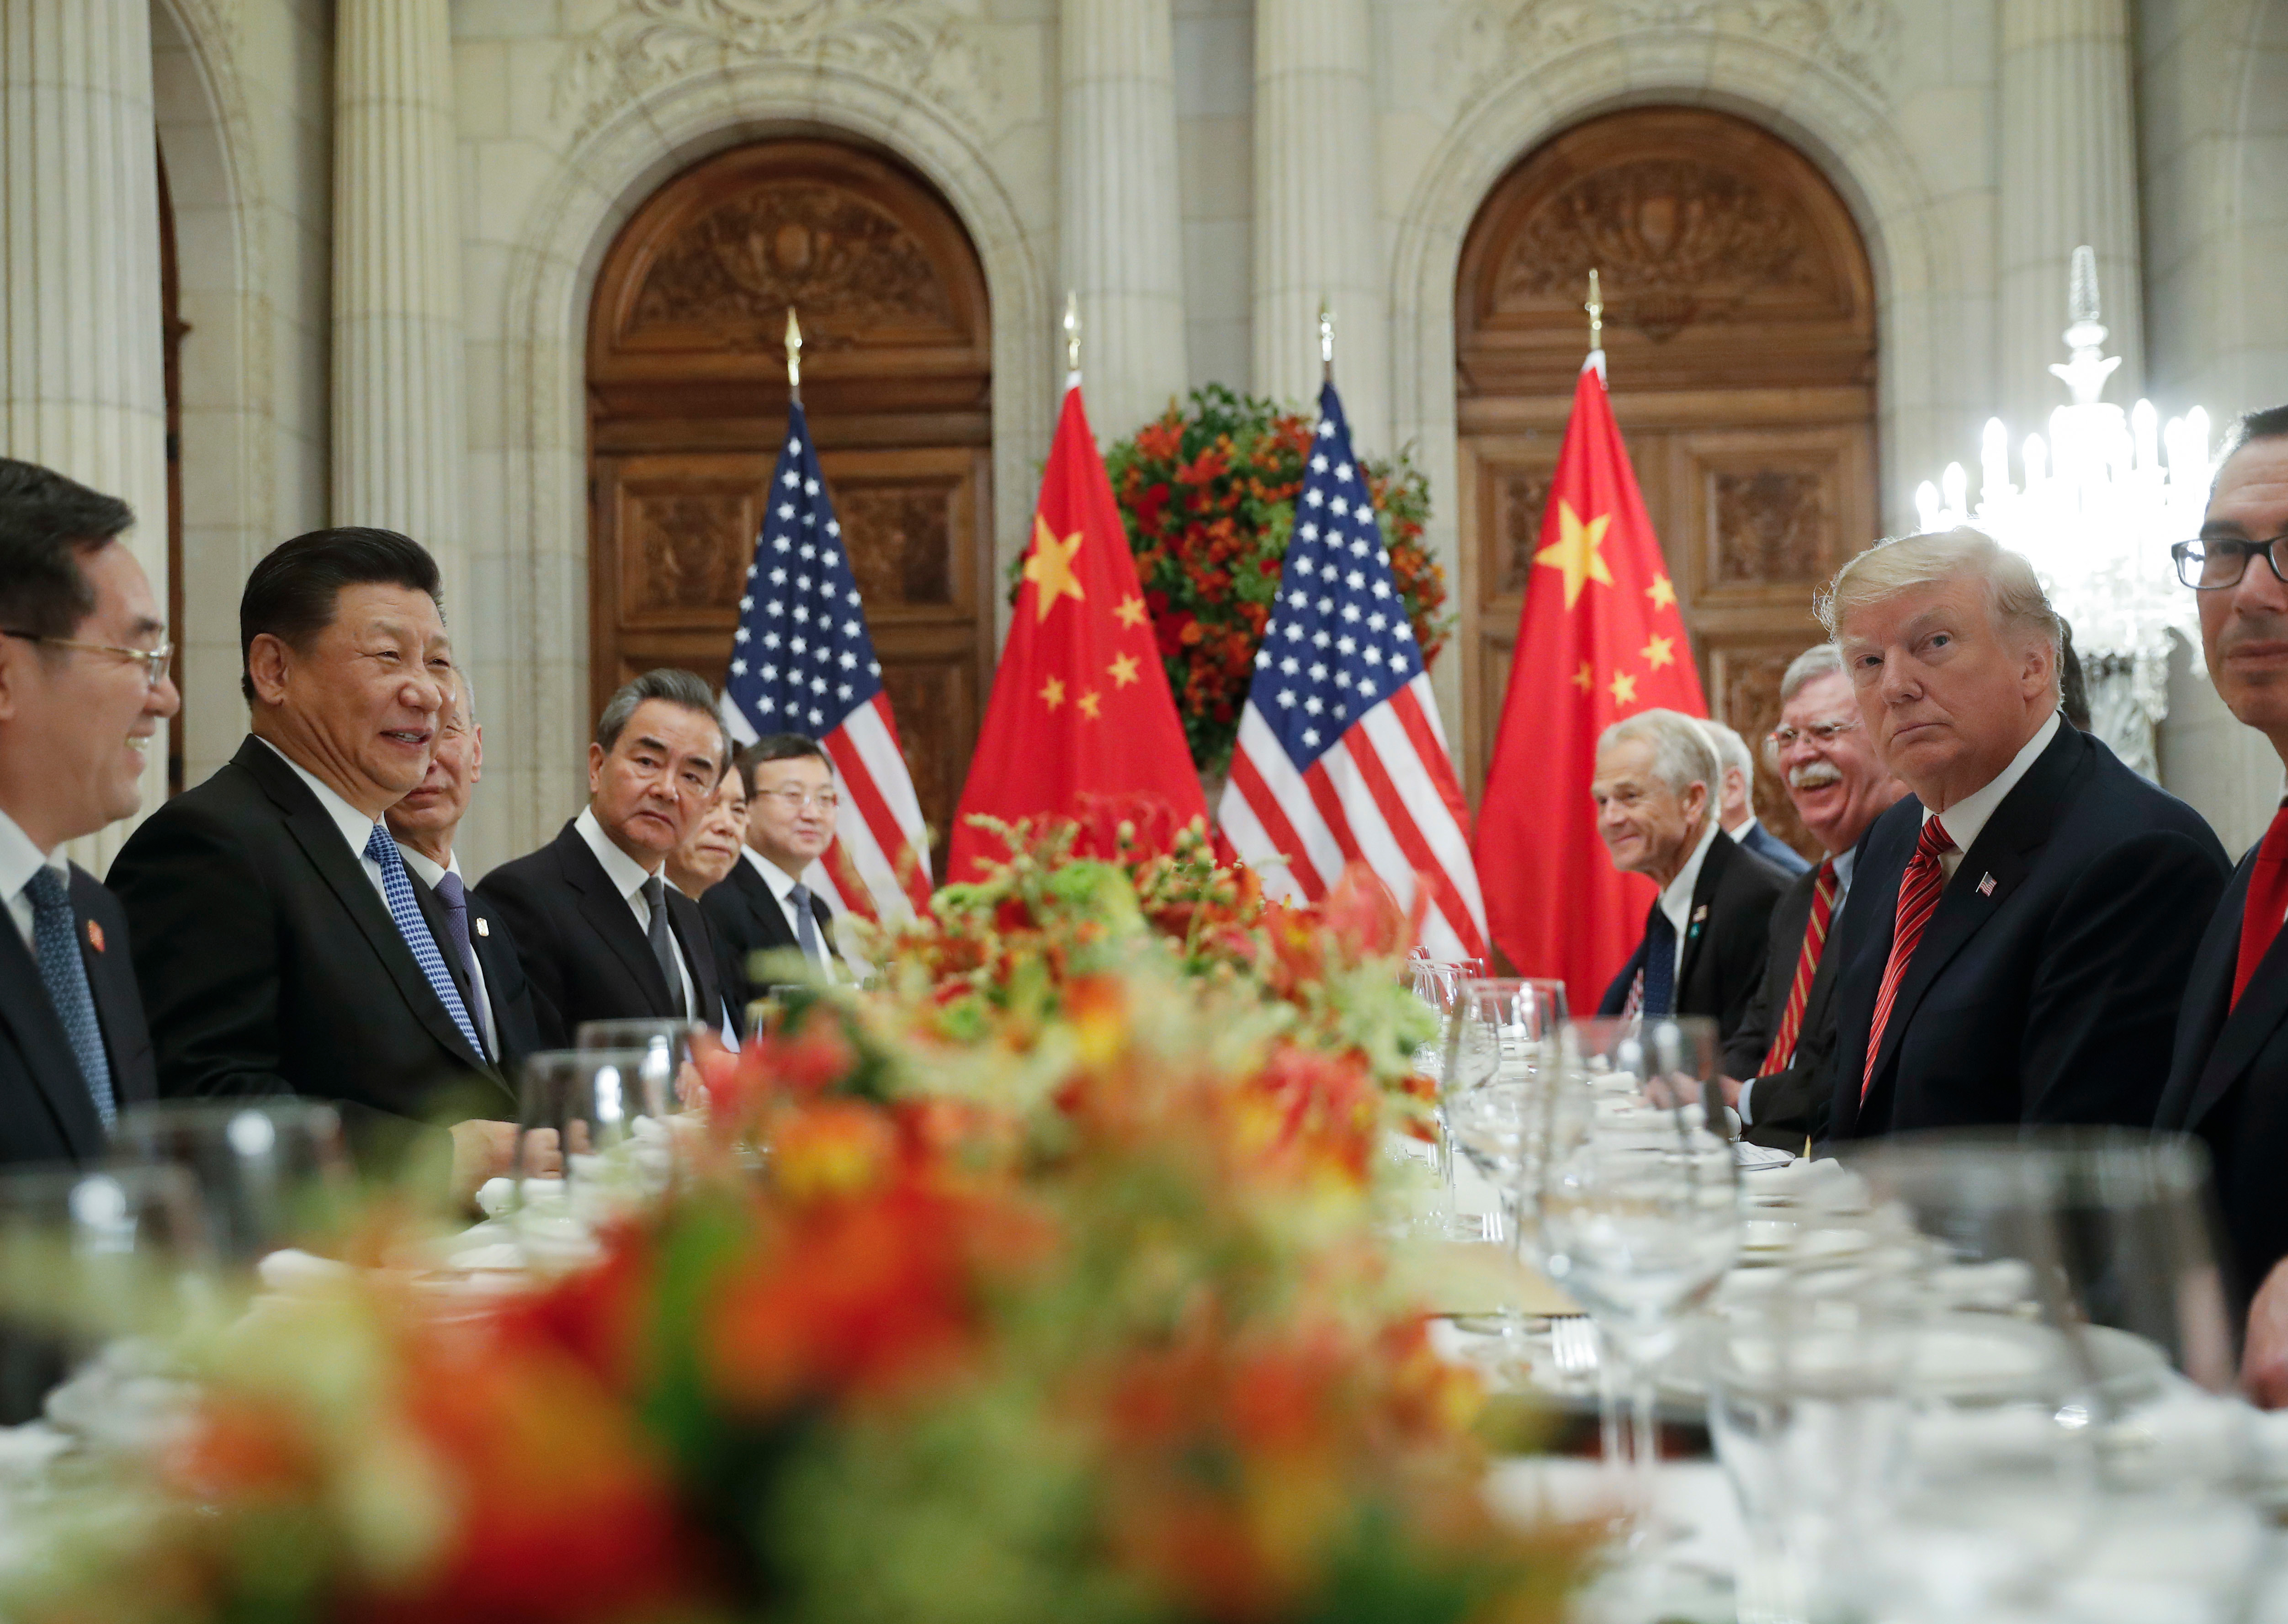 President Donald Trump with China's President Xi Jinping during their bilateral meeting at the G20 Summit